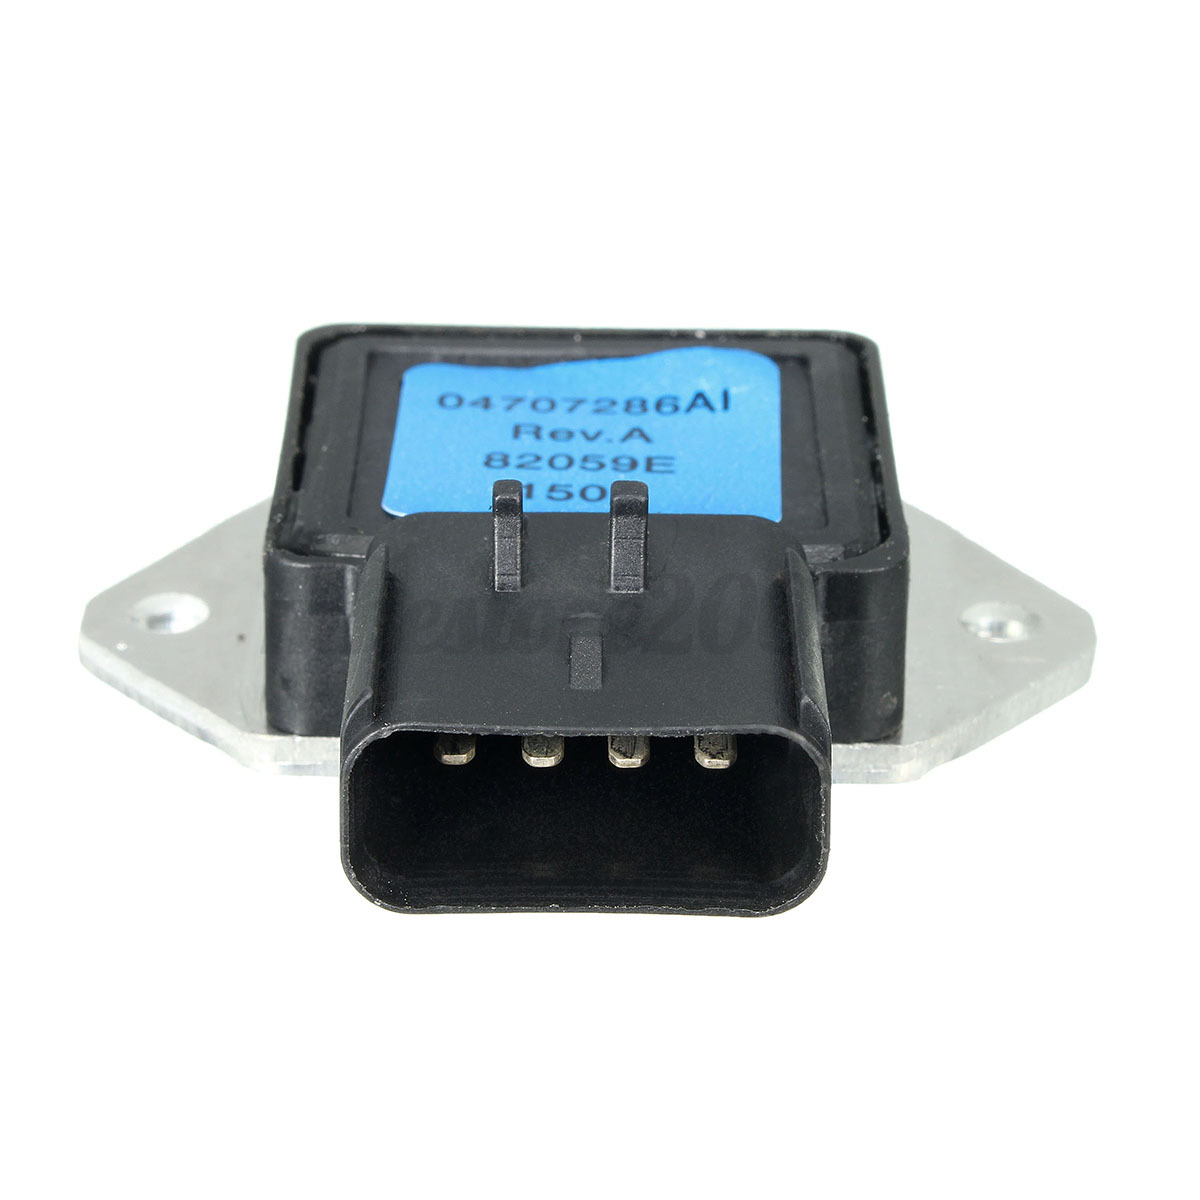 Radiator Cooling Fan Relay For Chrysler Dodge Jeep Plymouth 2002 Caravan Wiring Detail Image